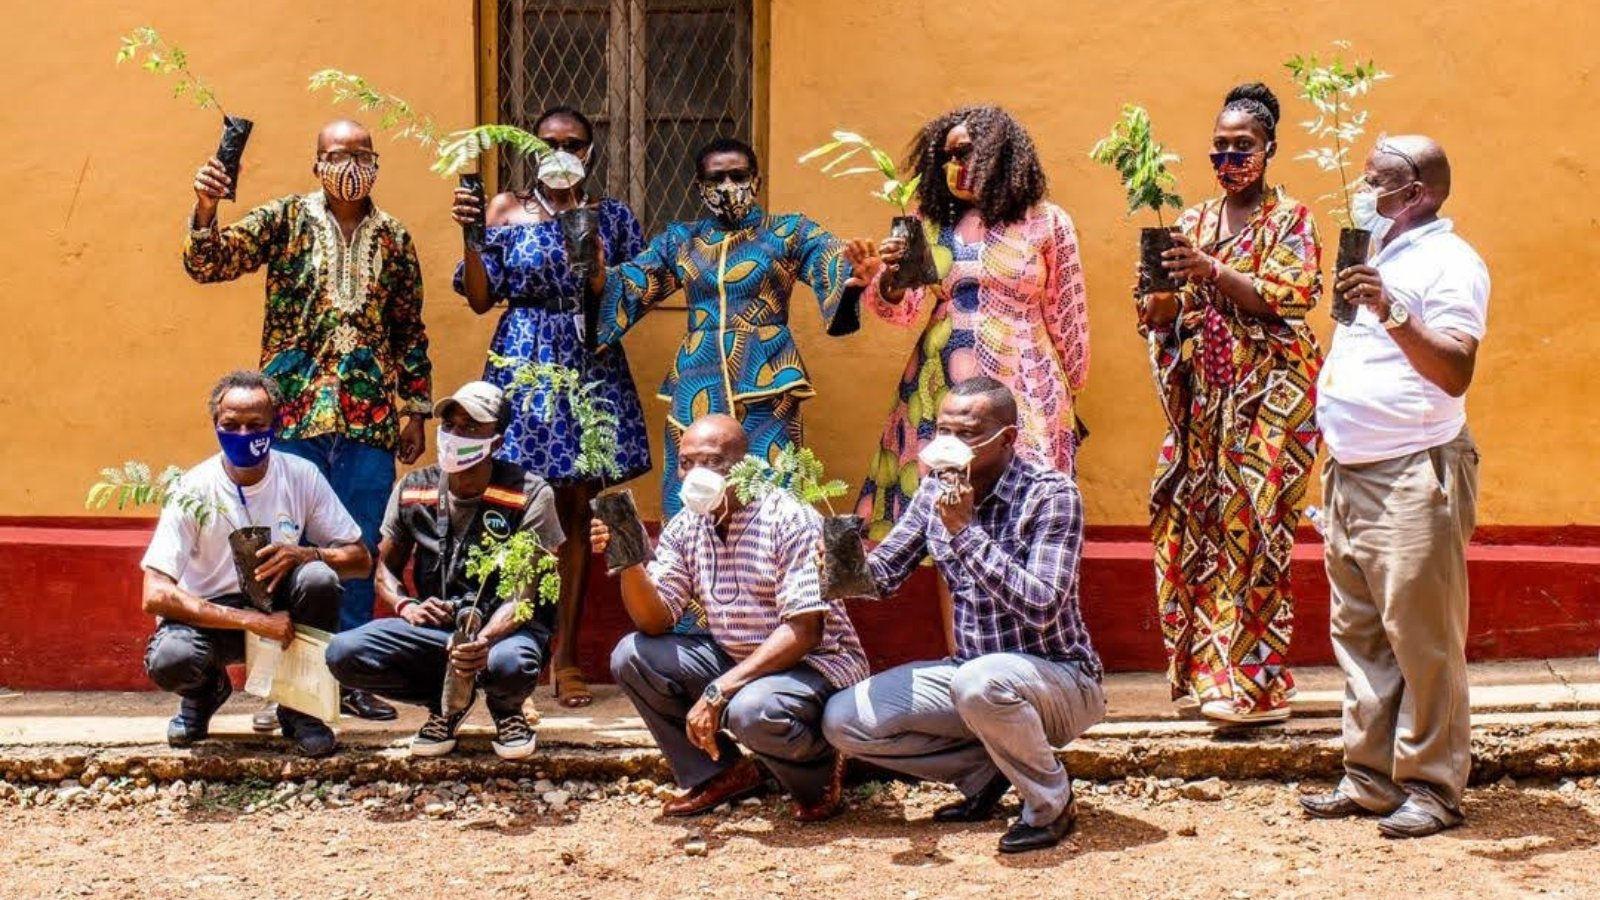 Residents of Freetown, Sierra Leone, show off tree planters